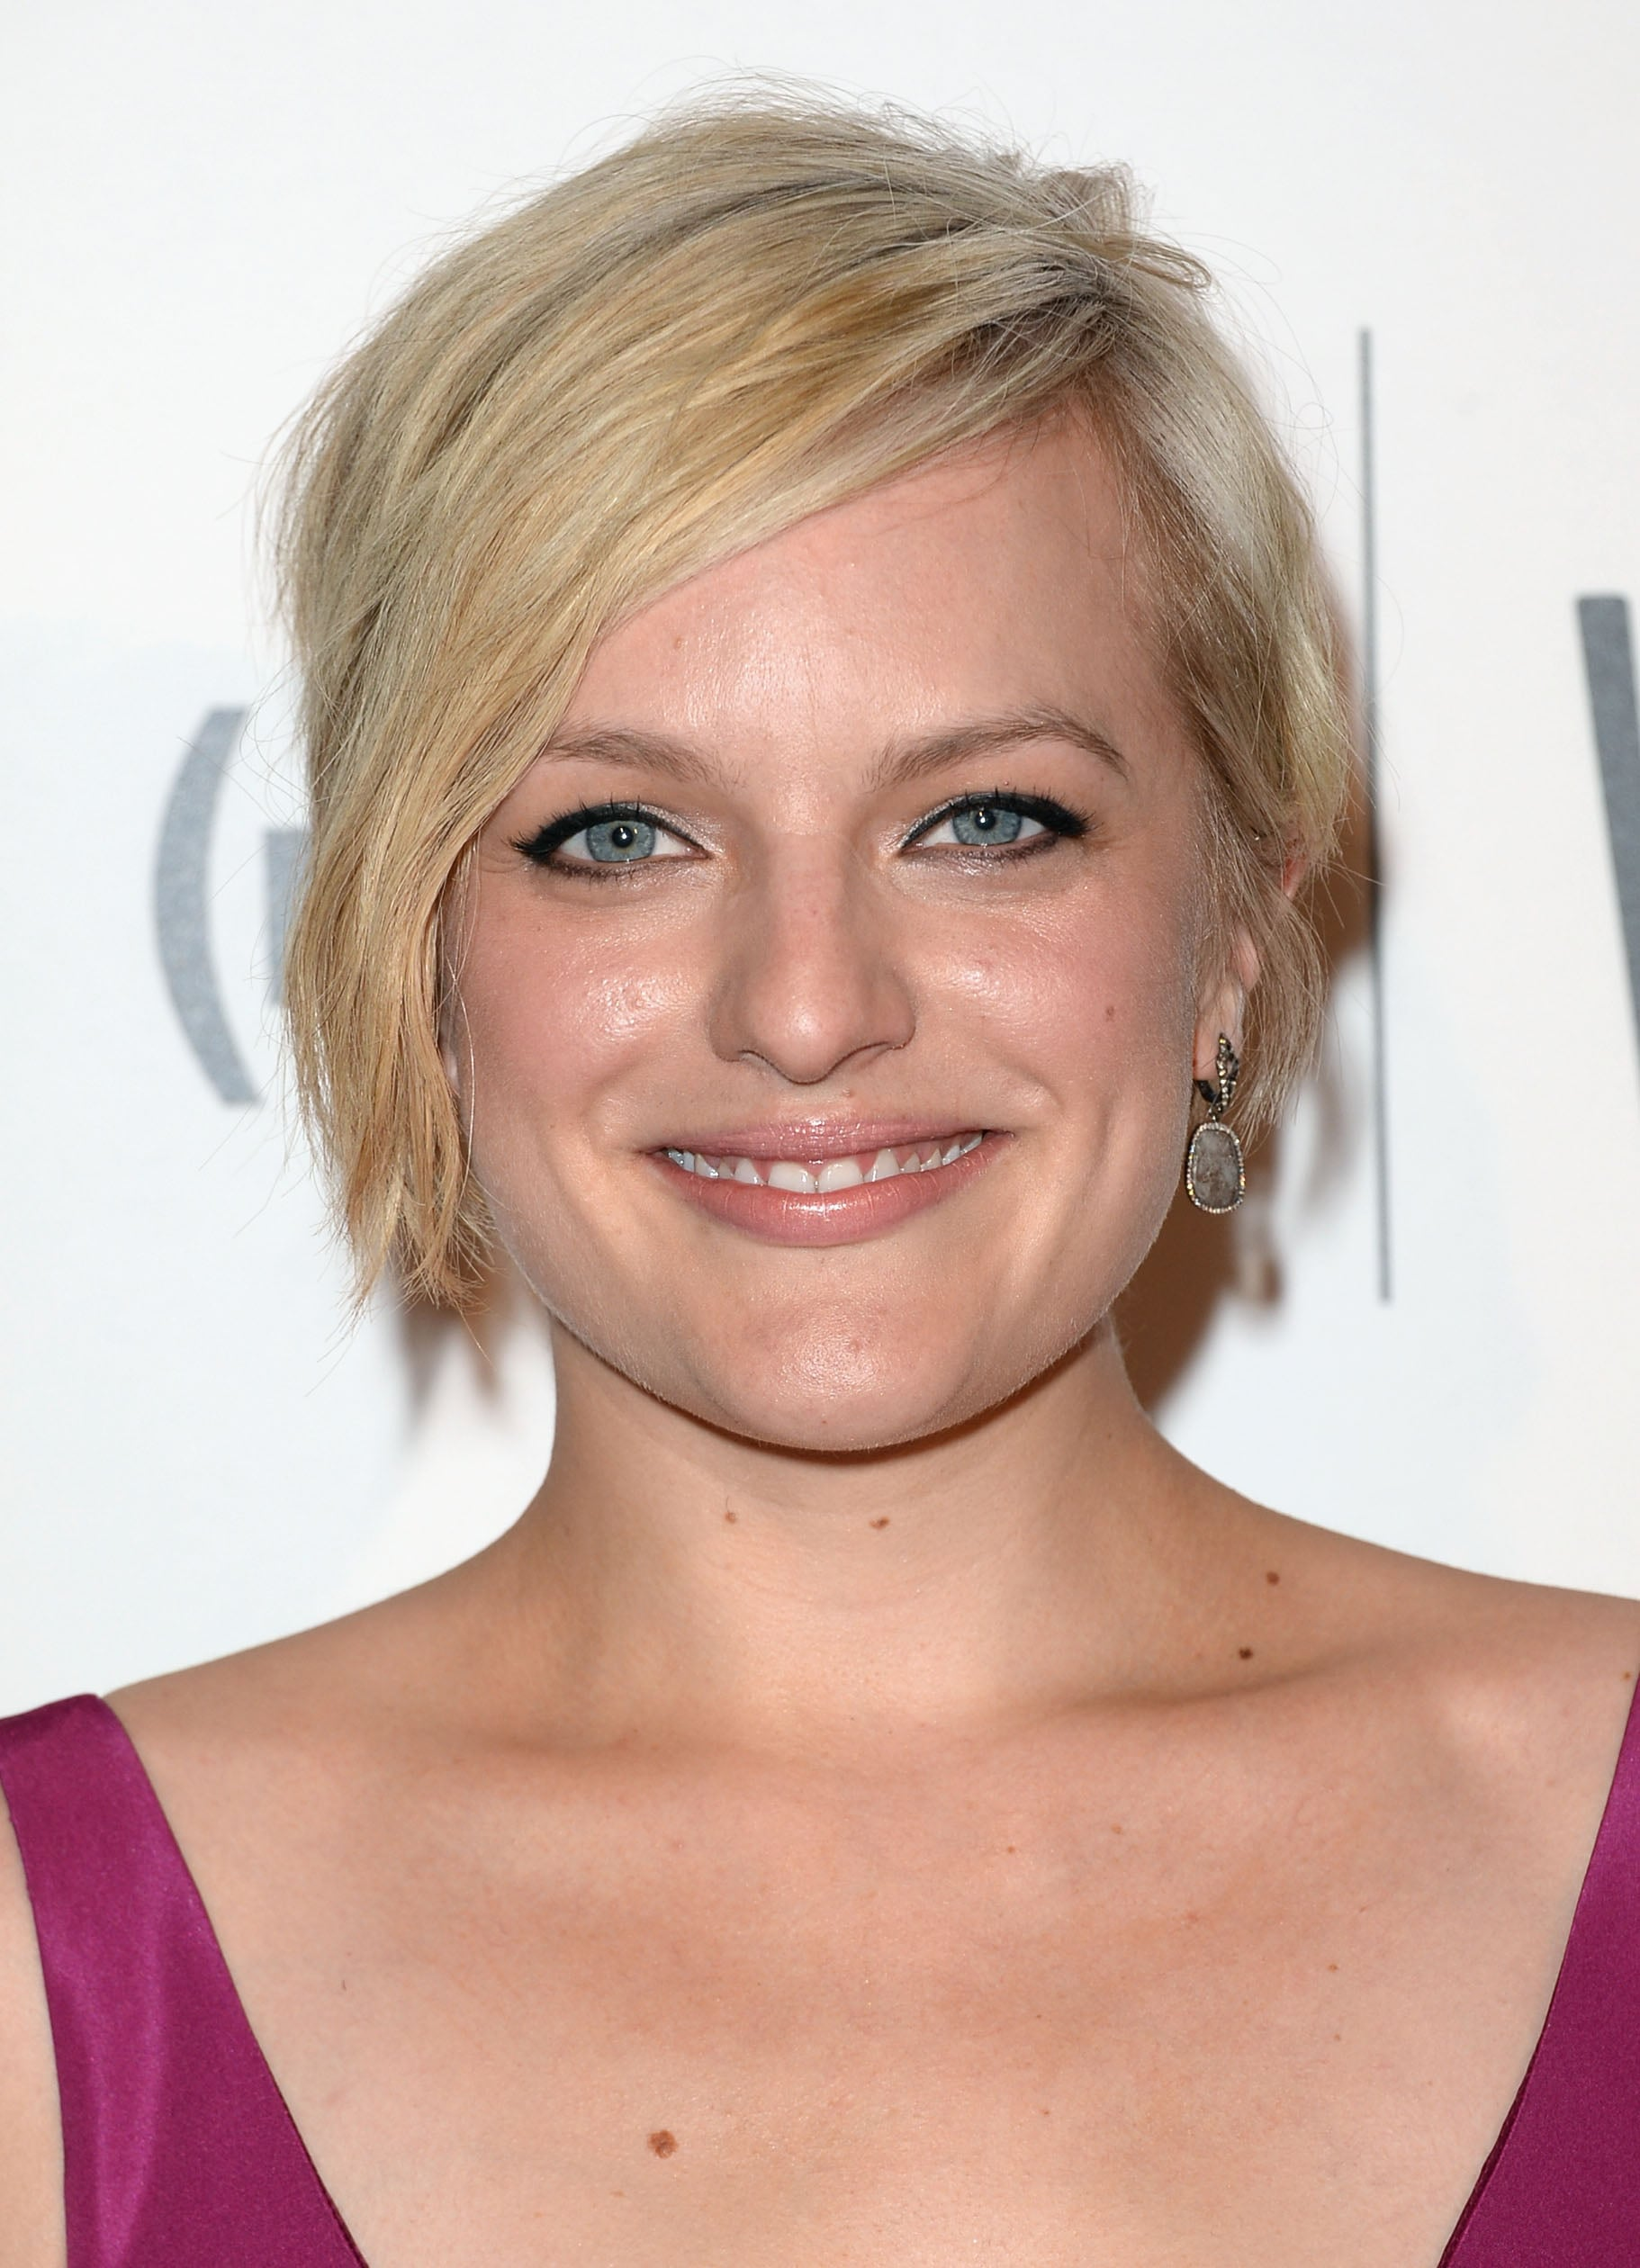 Wearing her asymmetrical pixie cut in a textured style, Elisabeth Moss lined her eyes in kohl for a cool-girl look.